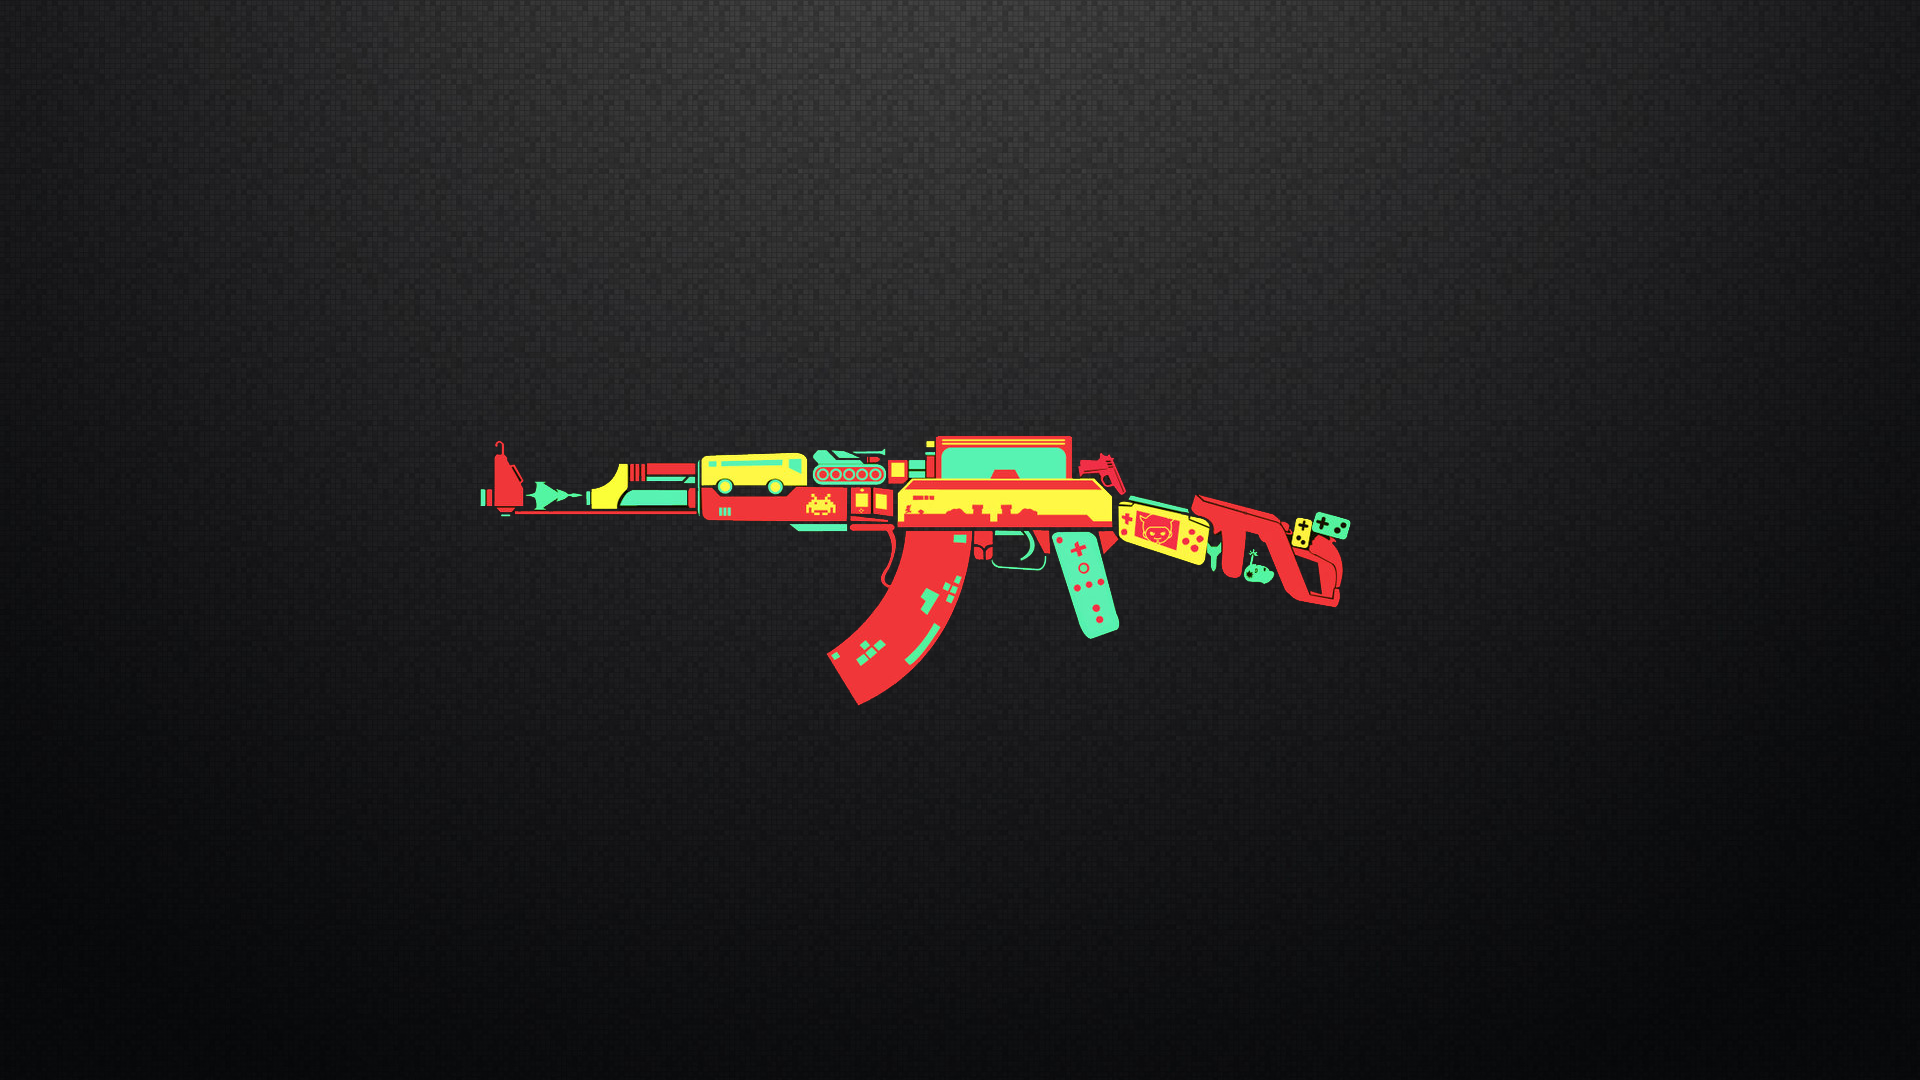 ak 47 controller game weapon funny humor wallpaper